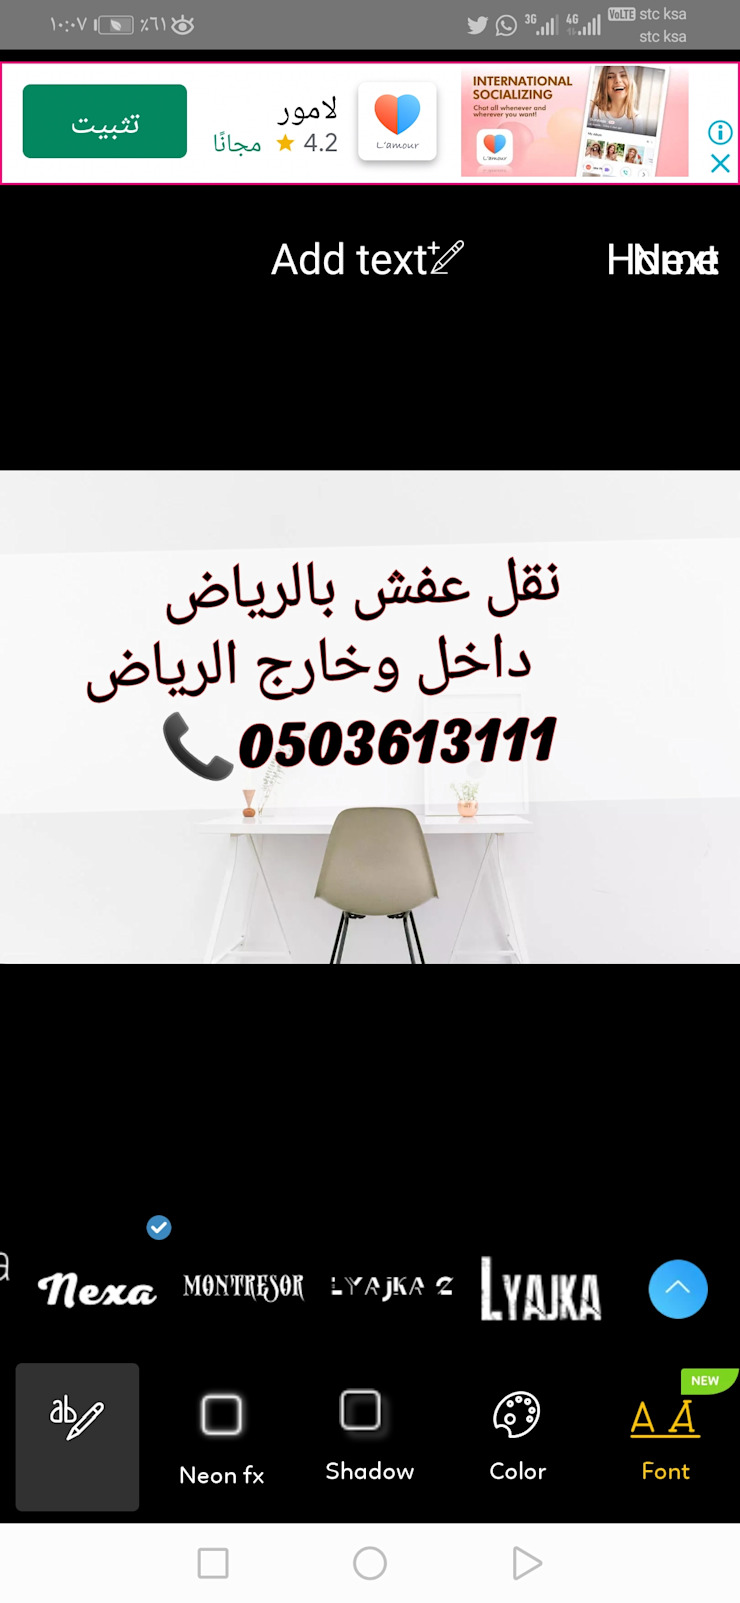 دينا نقل عفش بالرياض0503613111/0545355925 ArtworkOther artistic objects Silver/Gold Brown